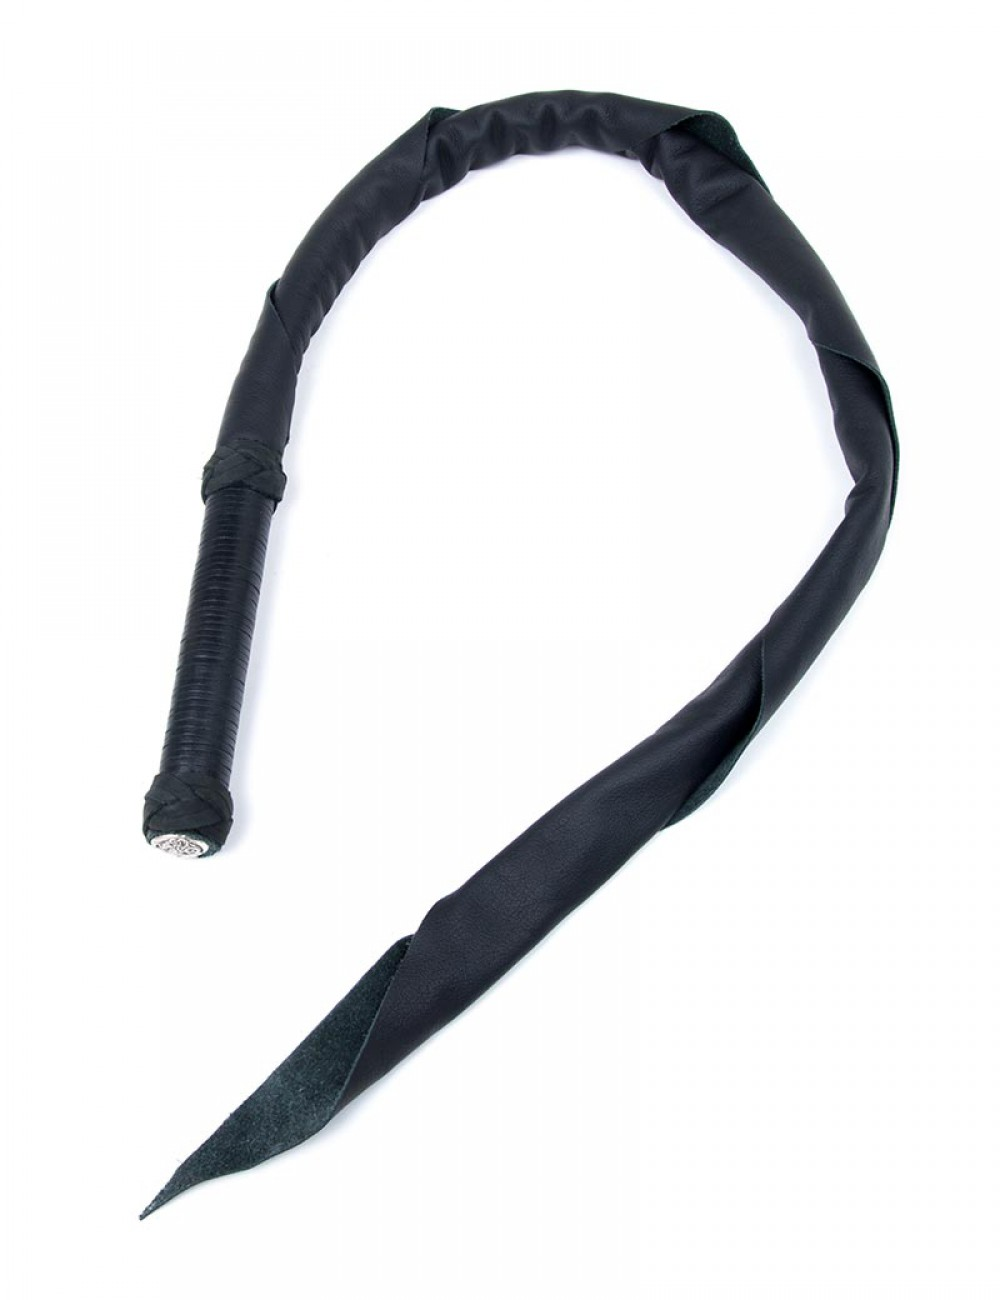 Dragontailz Whip, 4ft, black